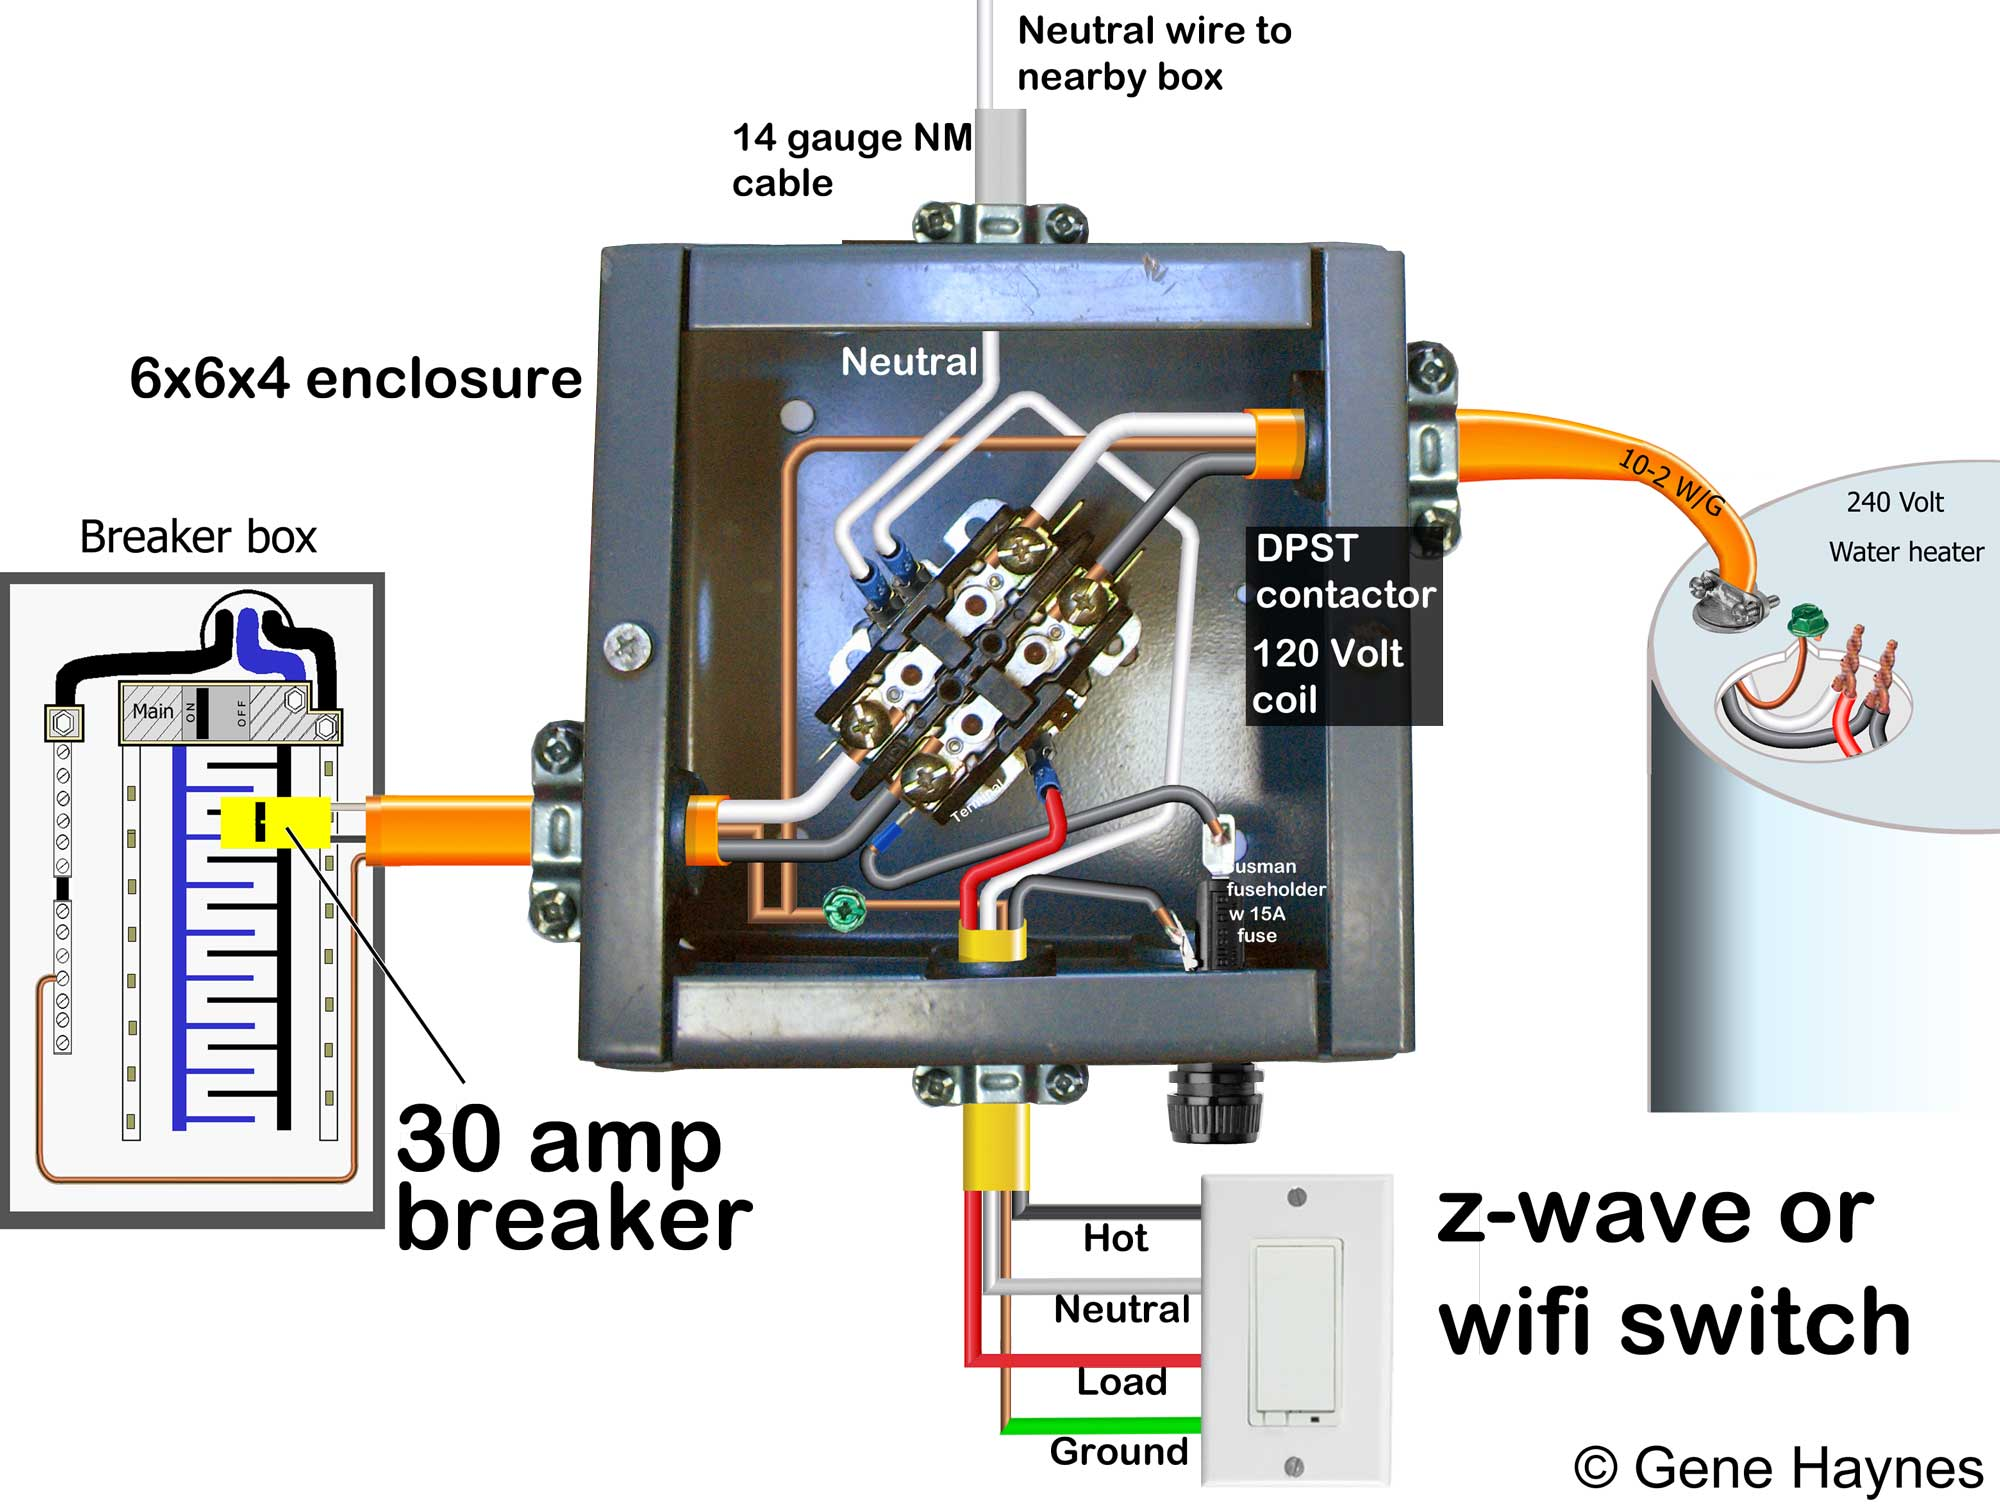 Step By How To Install Water Heater Timer Ground Off The Leg Of 12 Volt Pull Form Batteries In Series Larger Image With Neutral From Different Source This Plan Draws Hot One 240 And